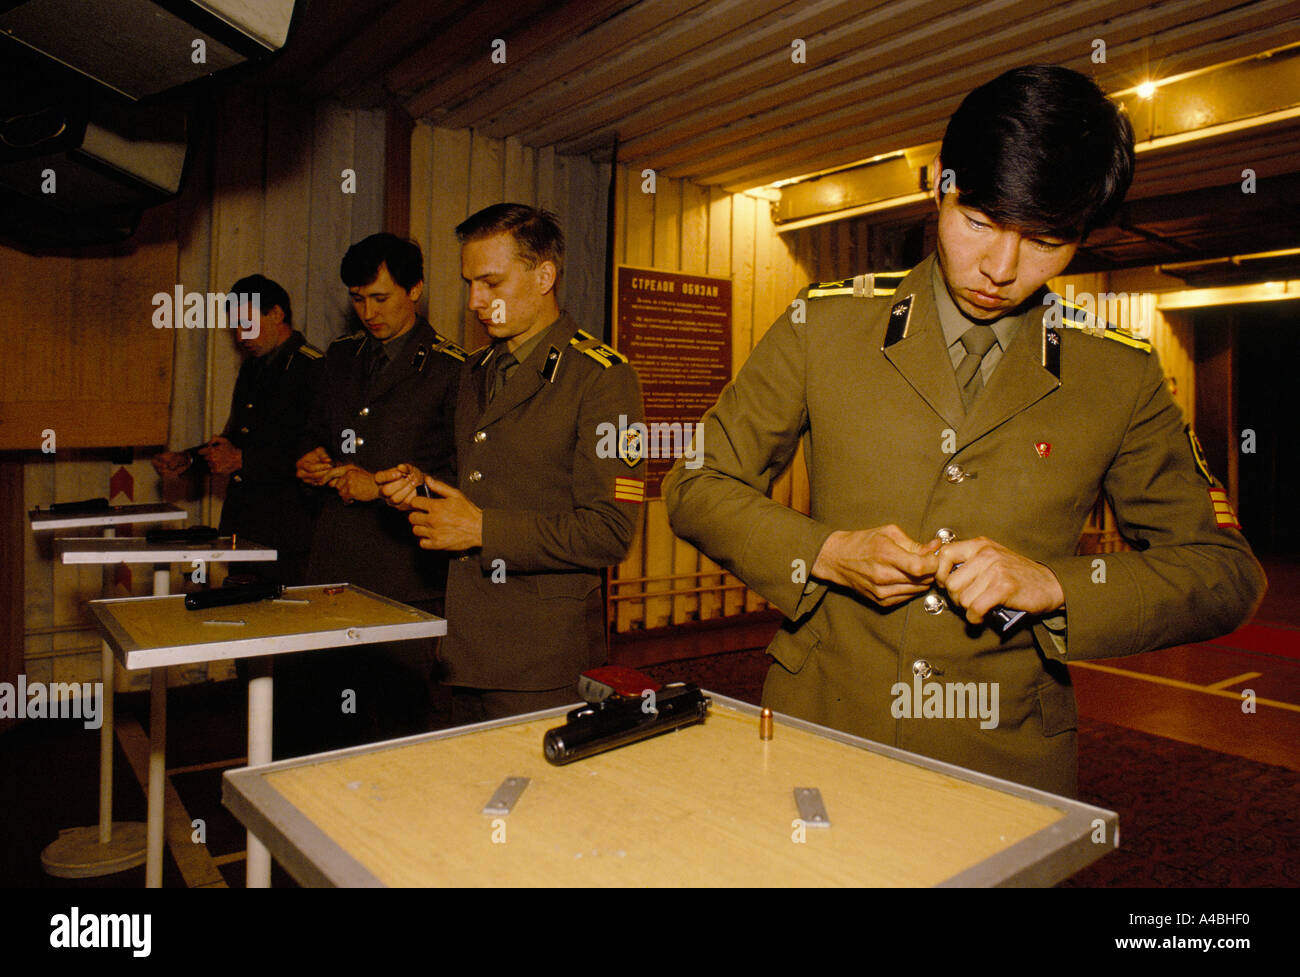 KGB officers load their hand guns in the KGB's training school, Moscow, Russia, USSR, 1990 - Stock Image